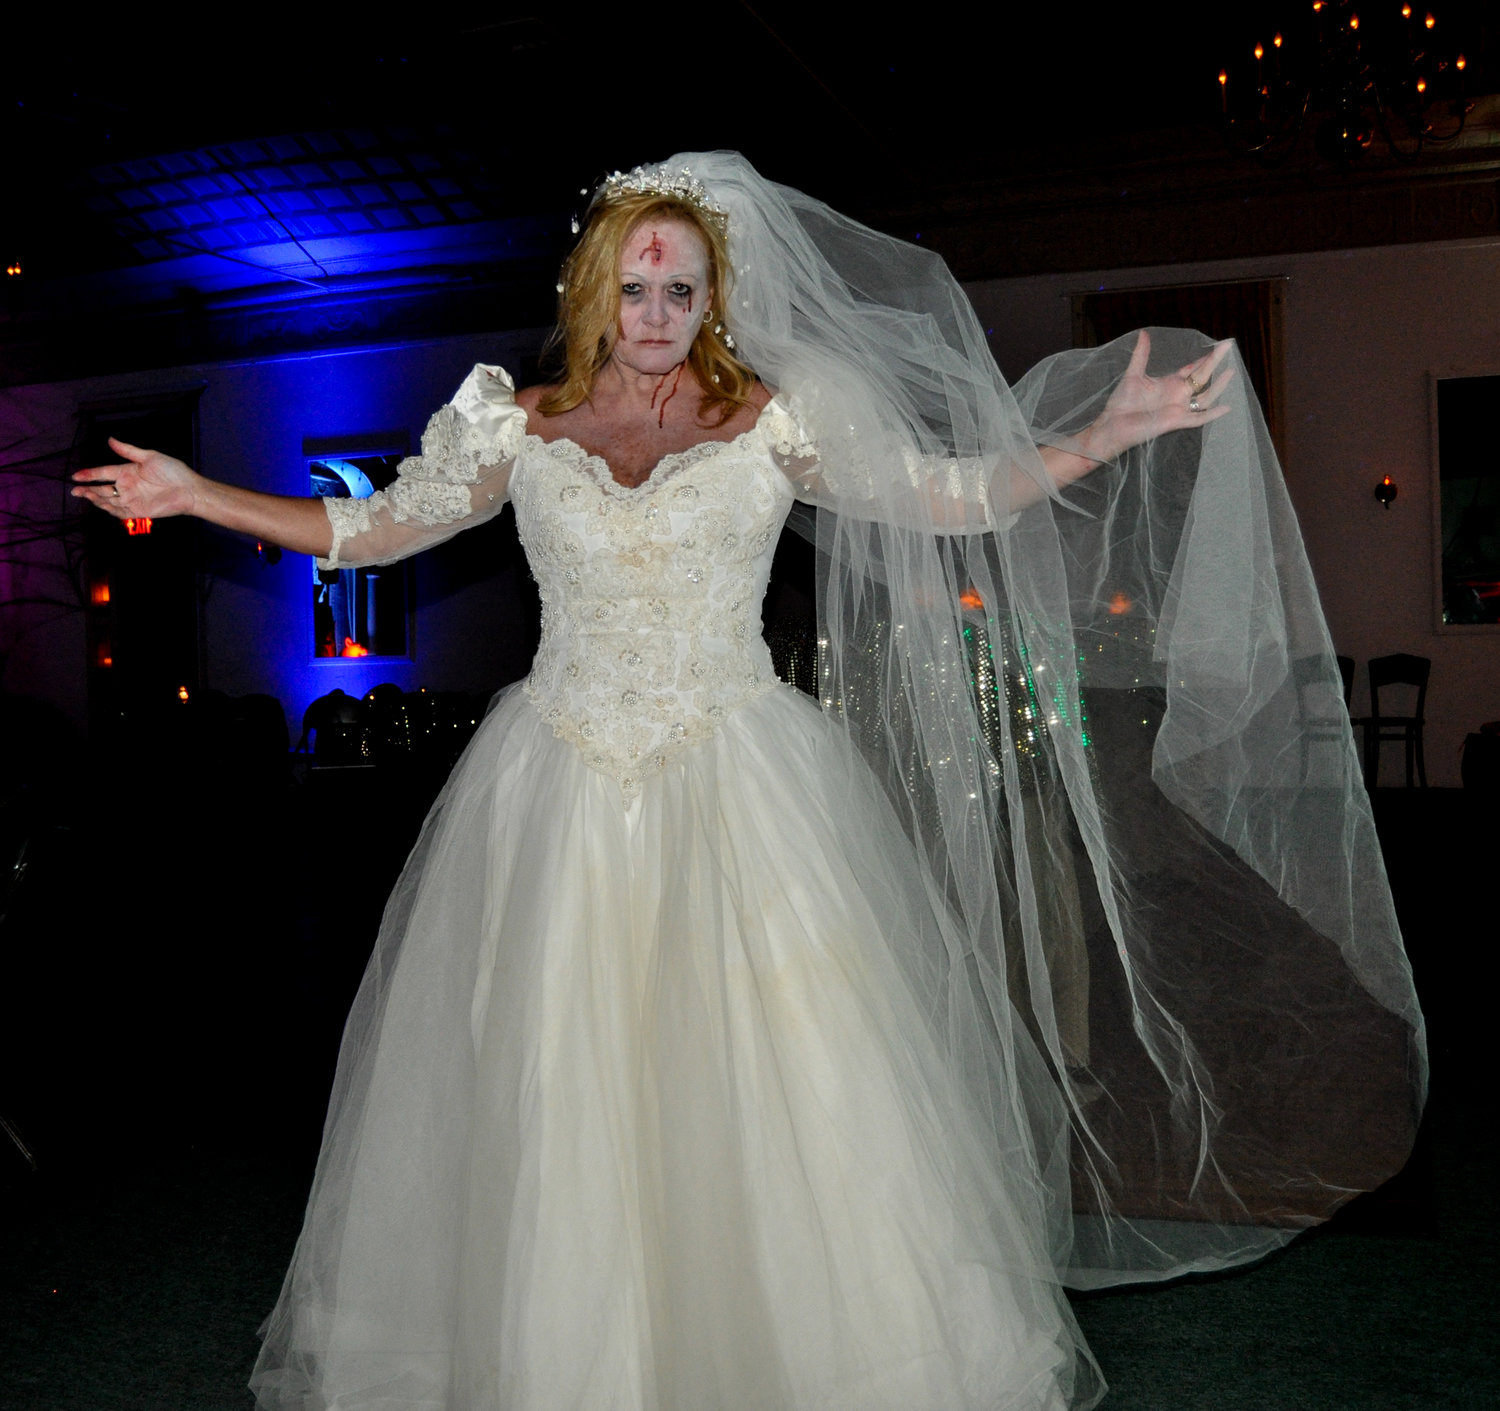 She may have been jilted at the altar and dead, but this bride managed to snag the coveted Best Female award at the Western Hotel's annual Halloween bash.